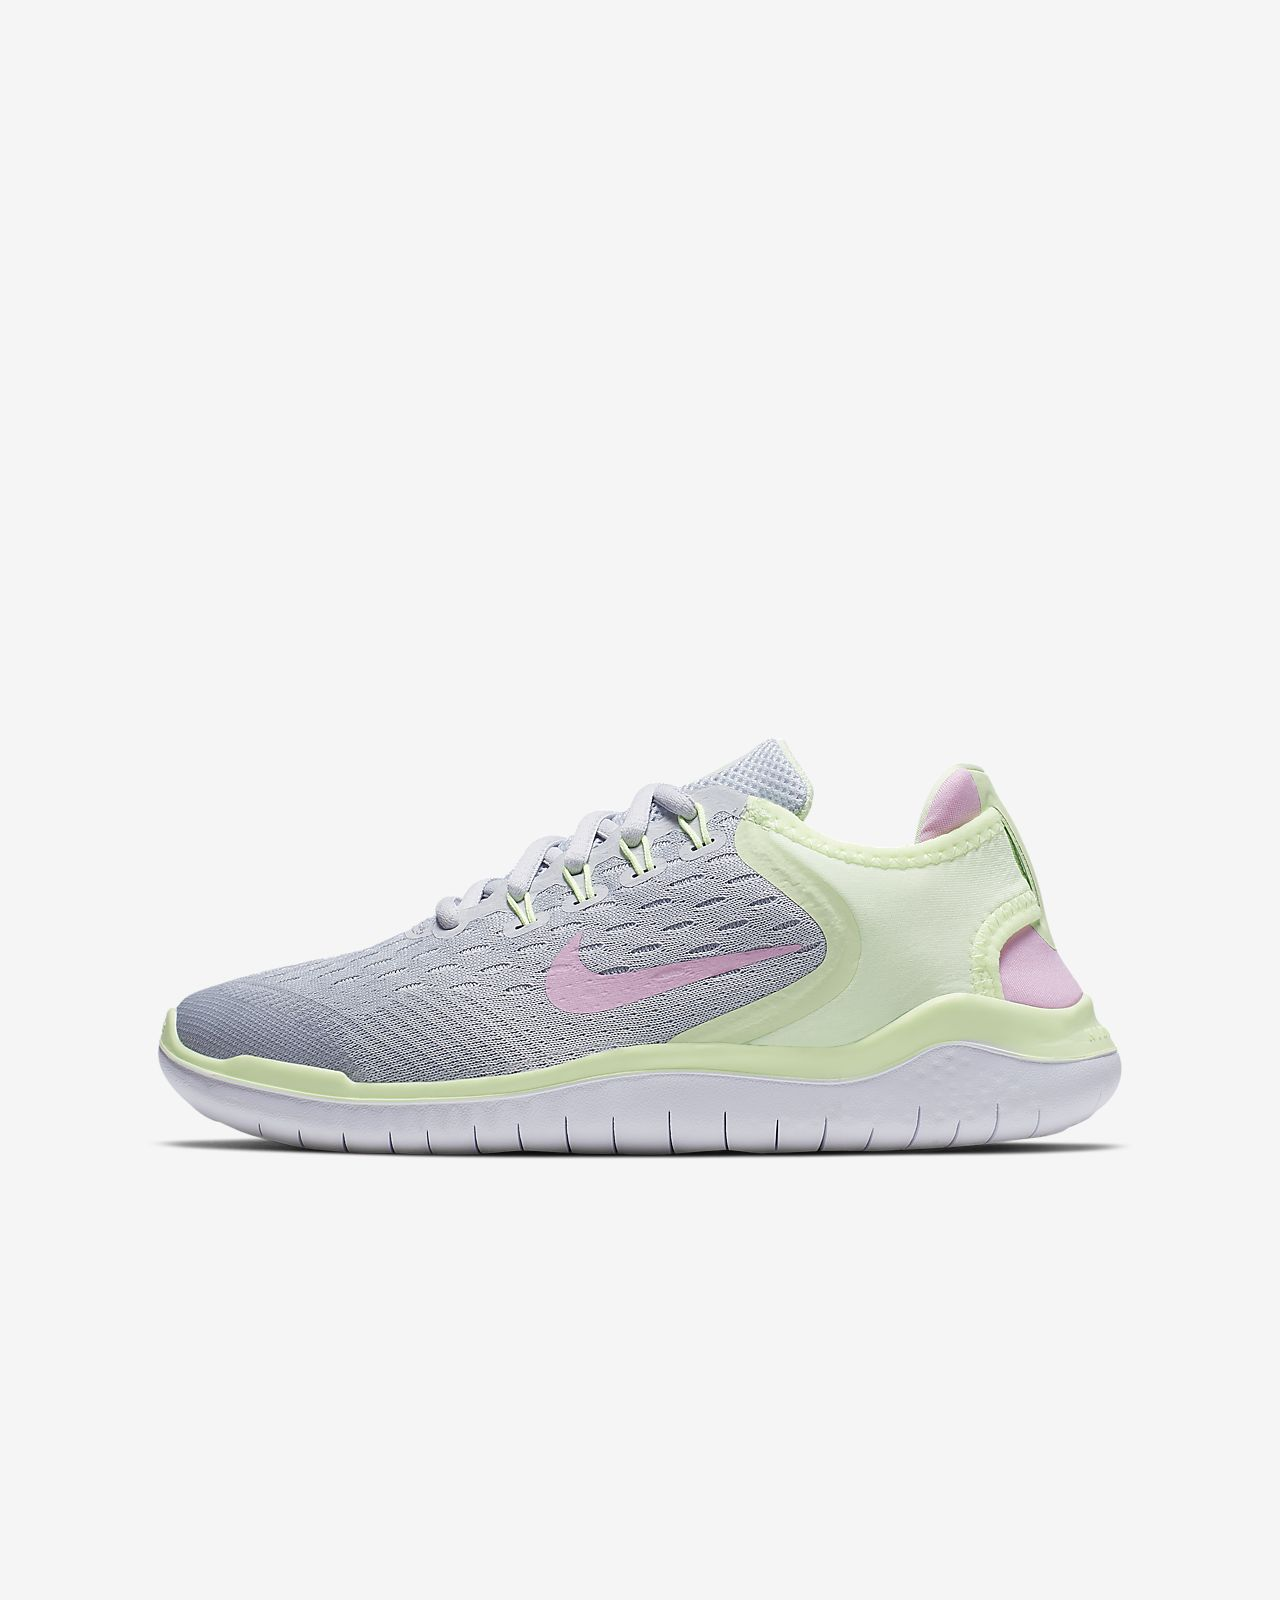 765773070e00b3 ... Nike Free RN 2018 Big Kids  Running Shoe